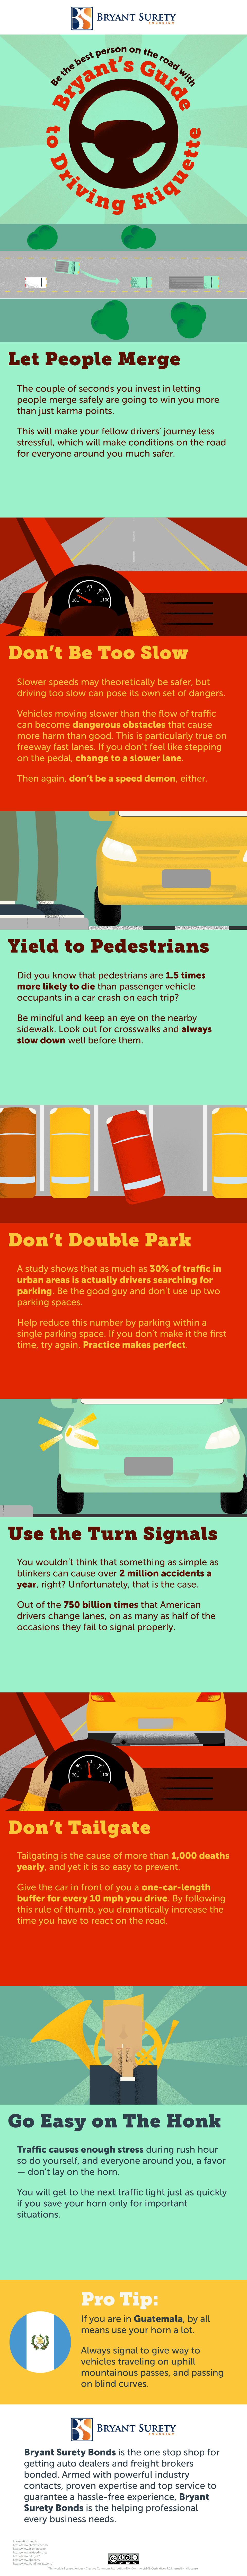 Guide to Driving Etiquette